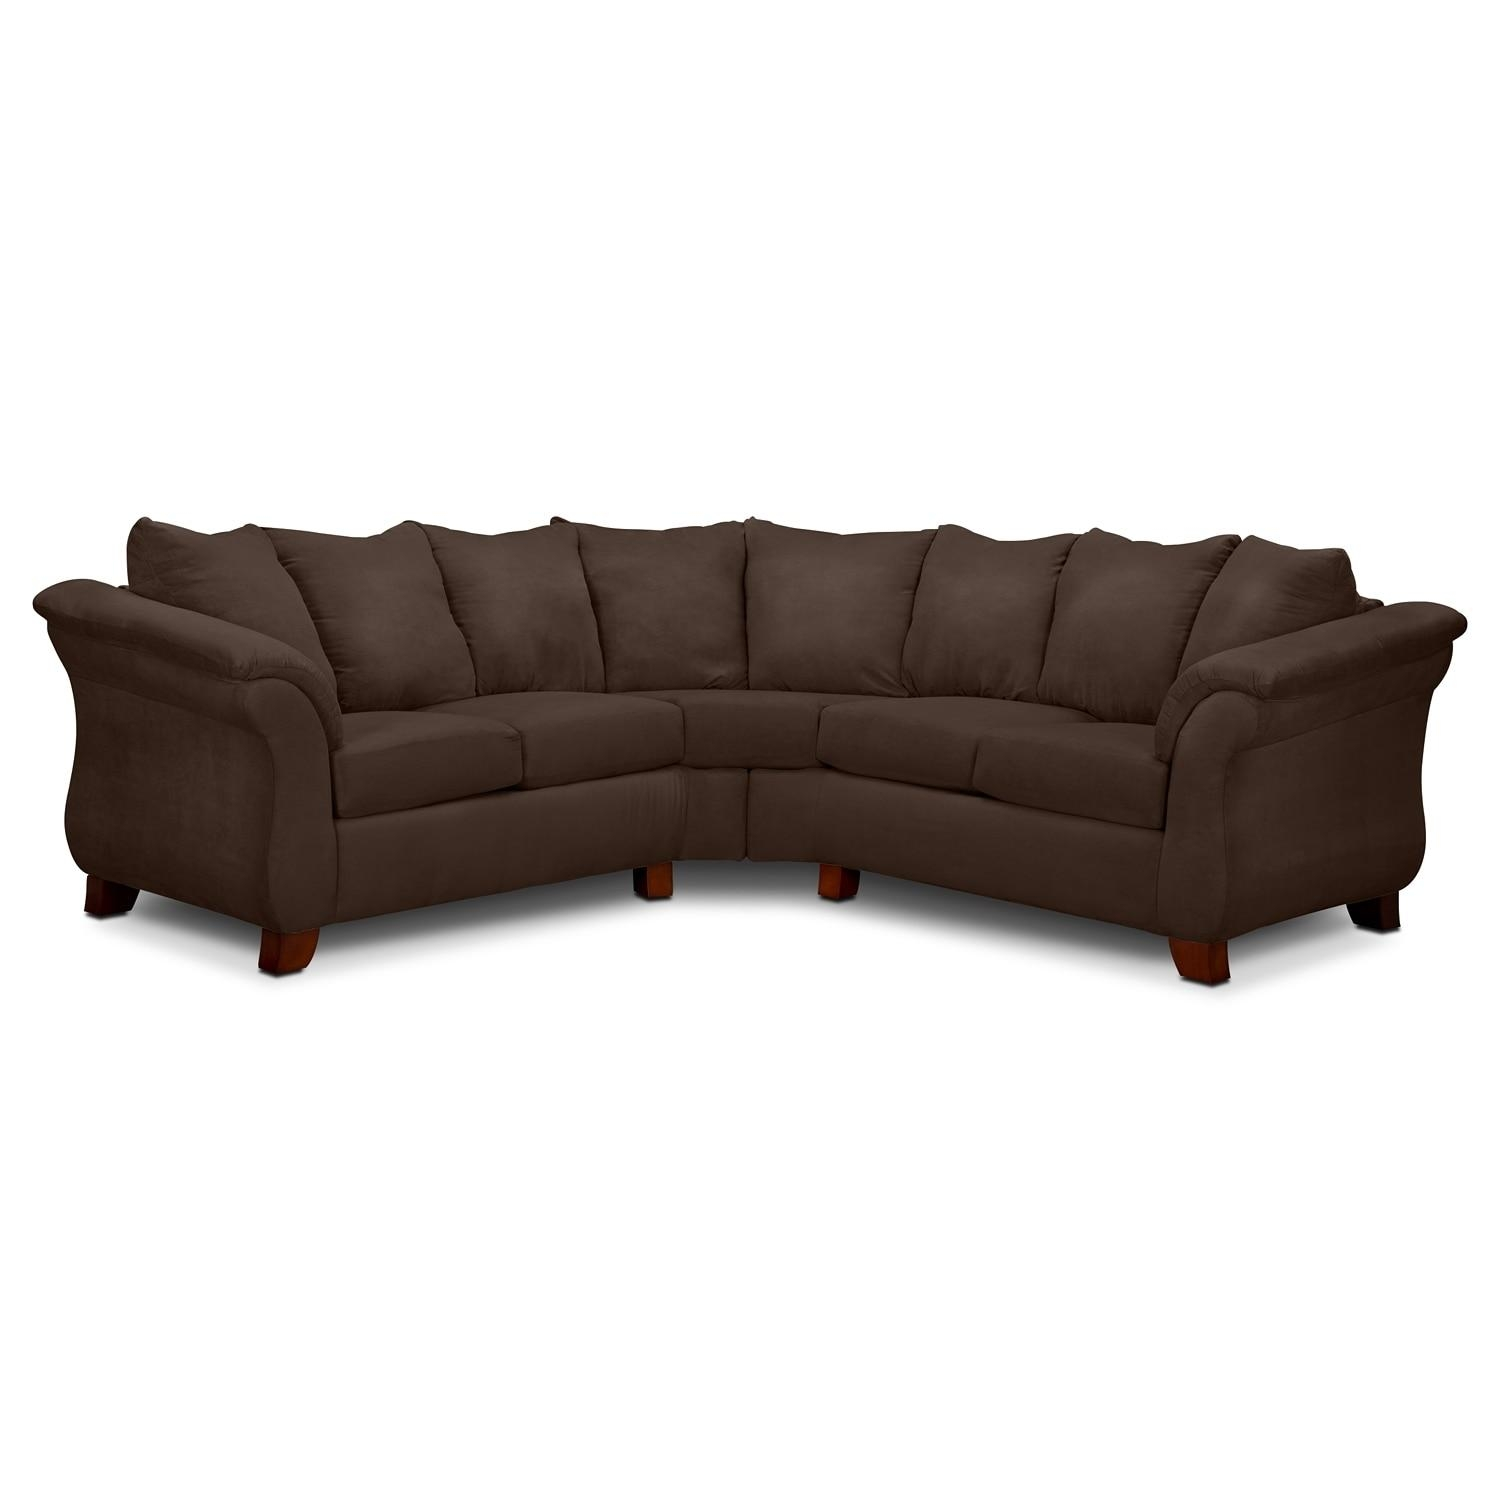 Adrian 2 Piece Sectional – Chocolate | American Signature Furniture Throughout Serta Sectional (Image 1 of 20)